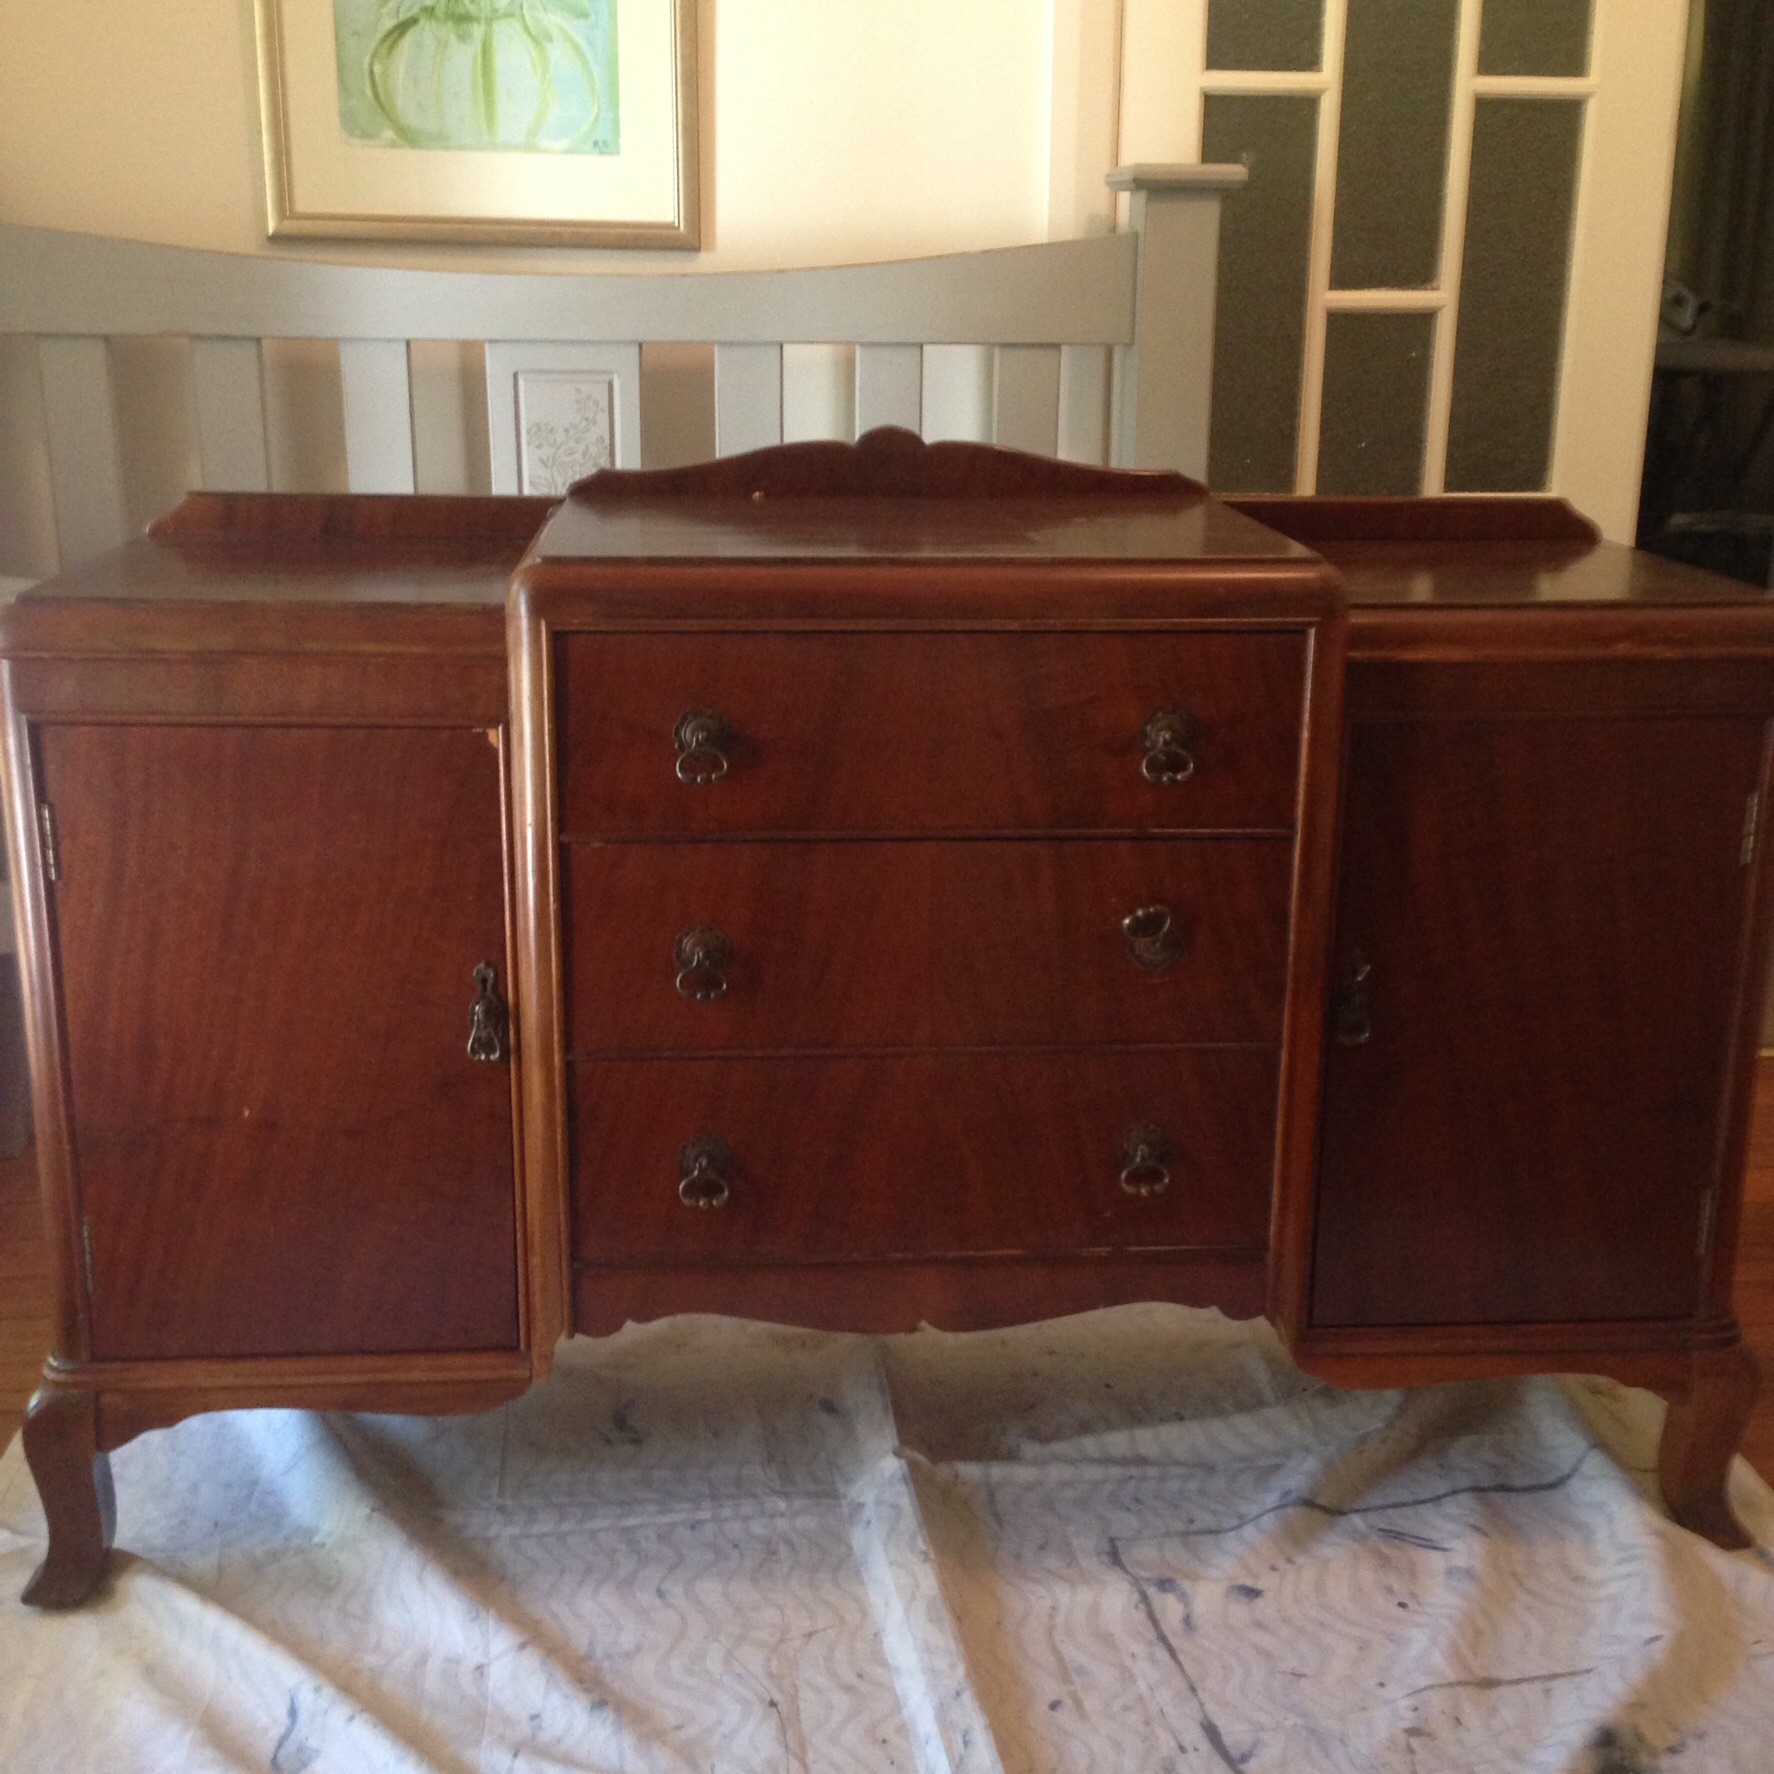 (Before) Vintage Sideboard Makeover in Graphite - by Rusty Blue Refashioned Furniture